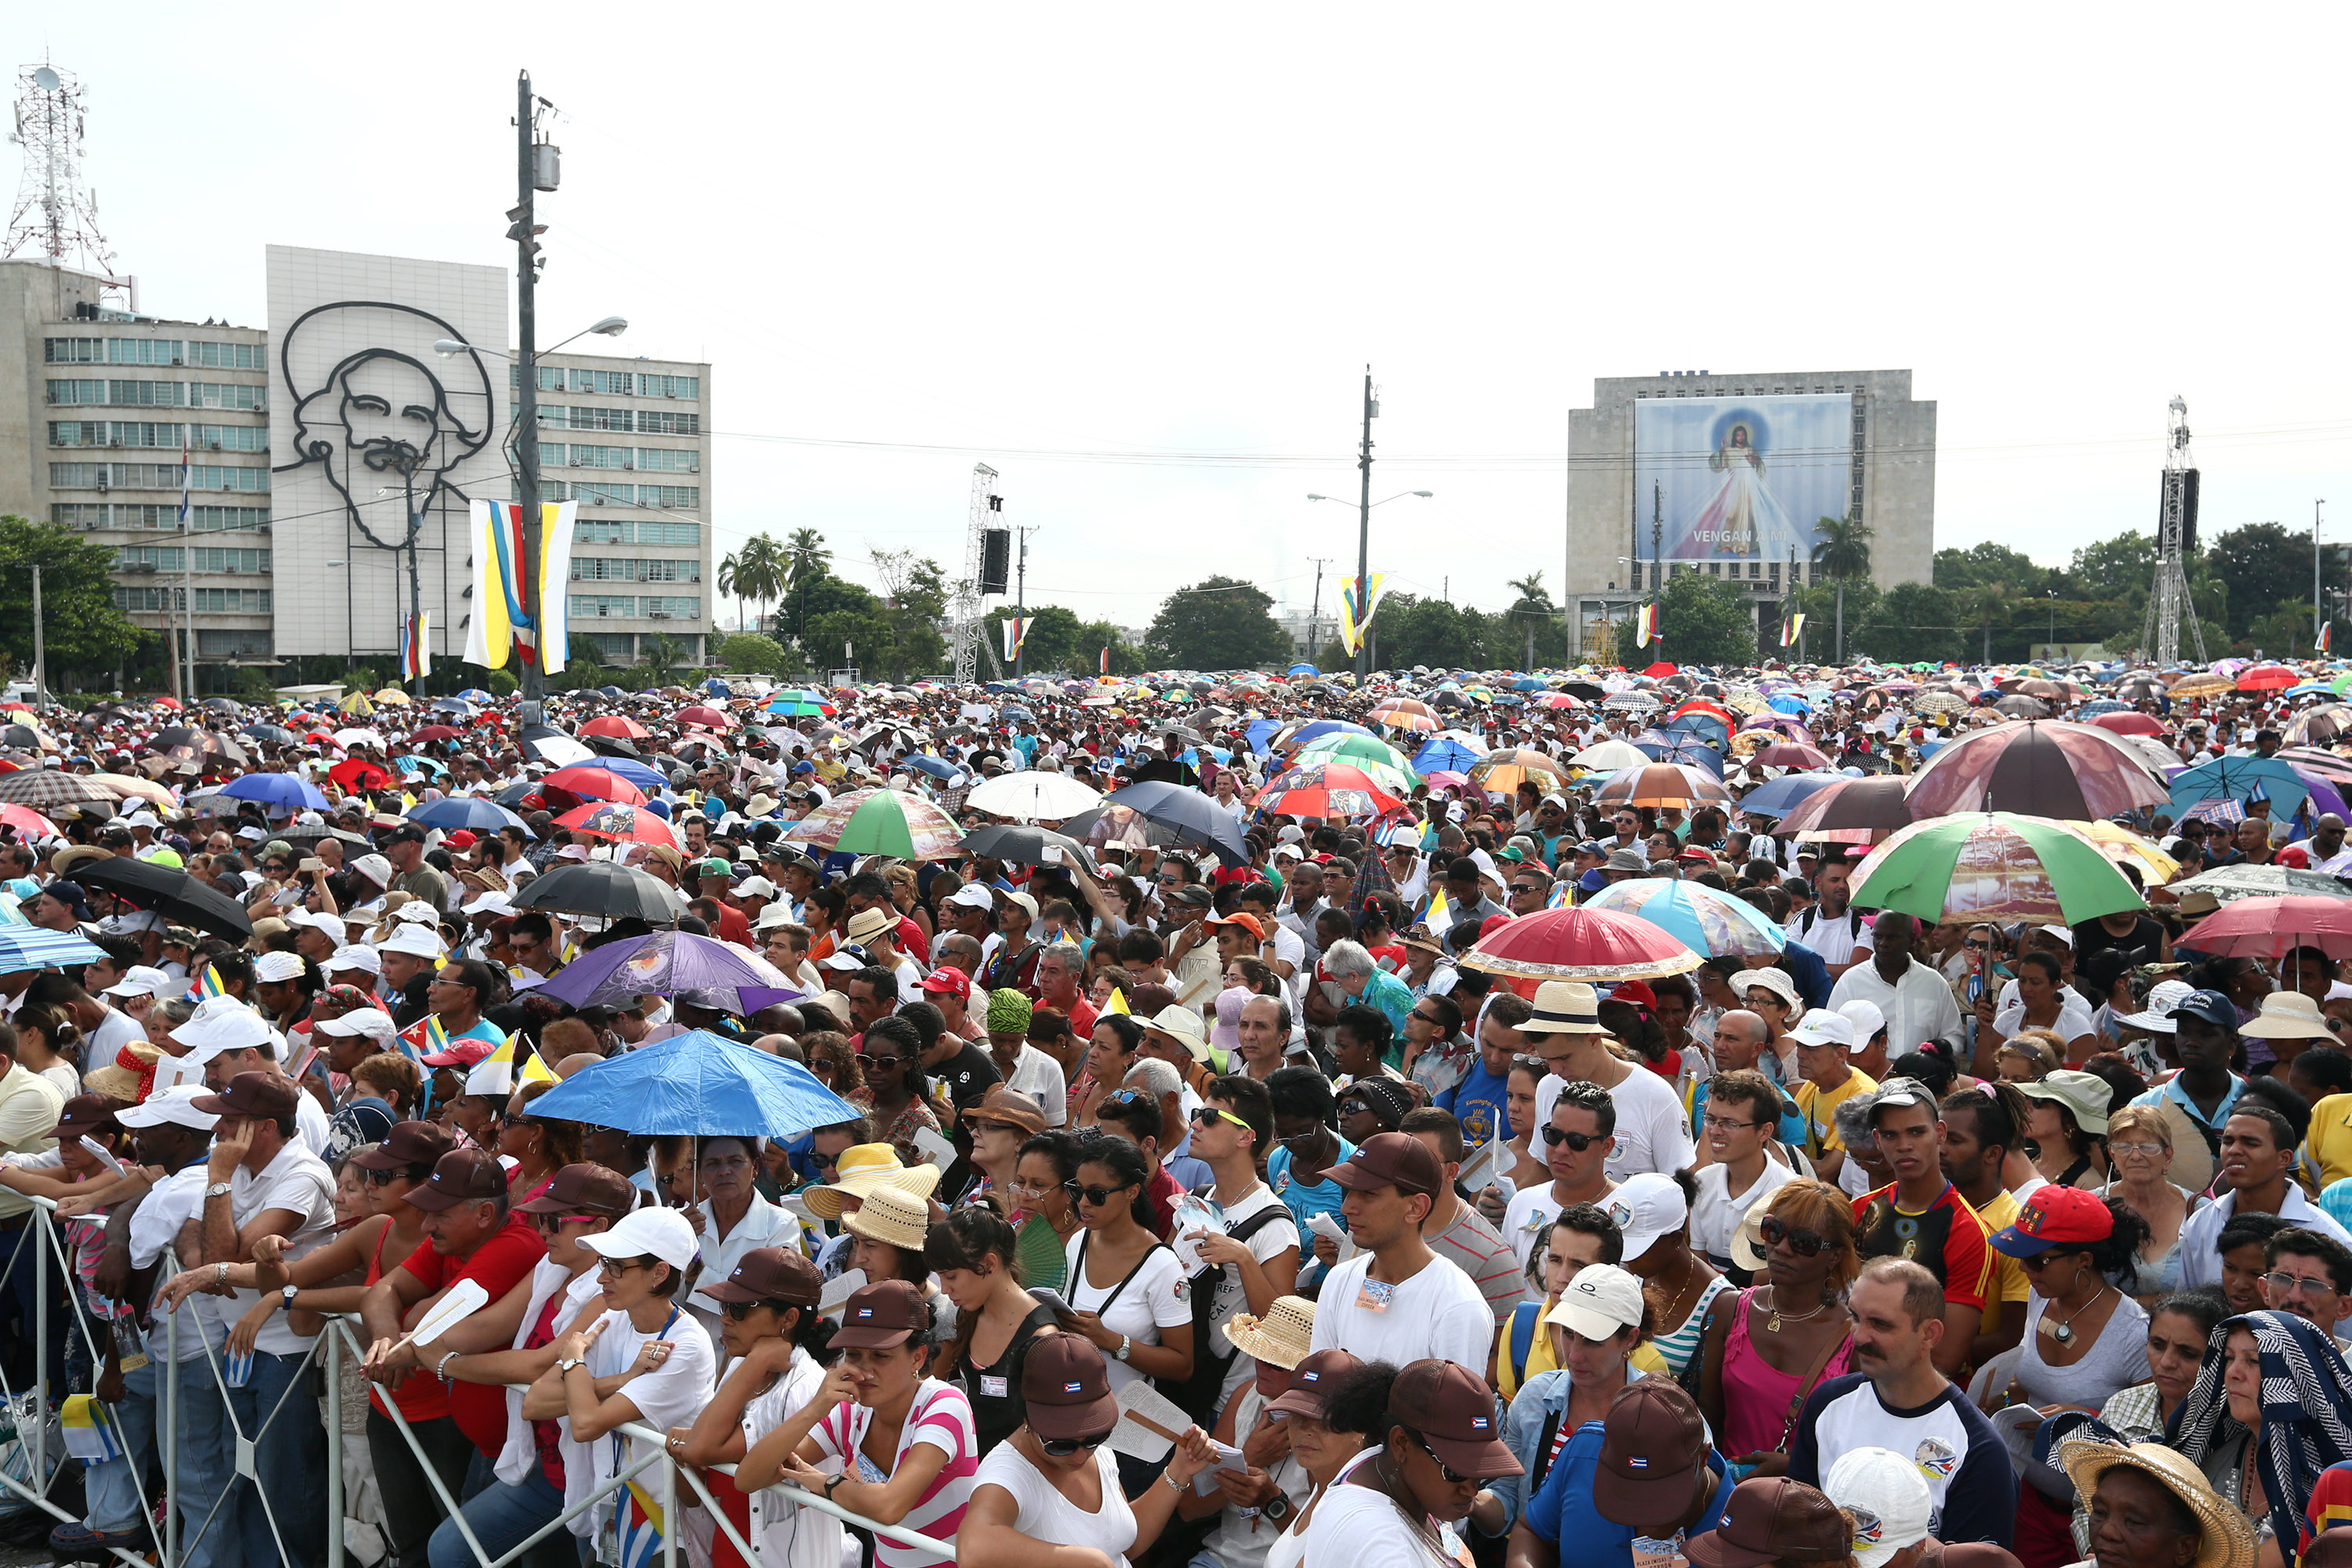 HAVANA, CUBA - SEPTEMBER 20:  People look on as Pope Francis performs Mass on September 20, 2015 in Revolution Square in Havana, Cuba. Pope Francis is on the first full day of his three day visit to Cuba where he will meet President Raul Castro and hold Mass in Revolution Square before travelling to Holguin, Santiago de Cuba and El Cobre then onwards to the United States.  (Photo by Carl Court/Getty Images)